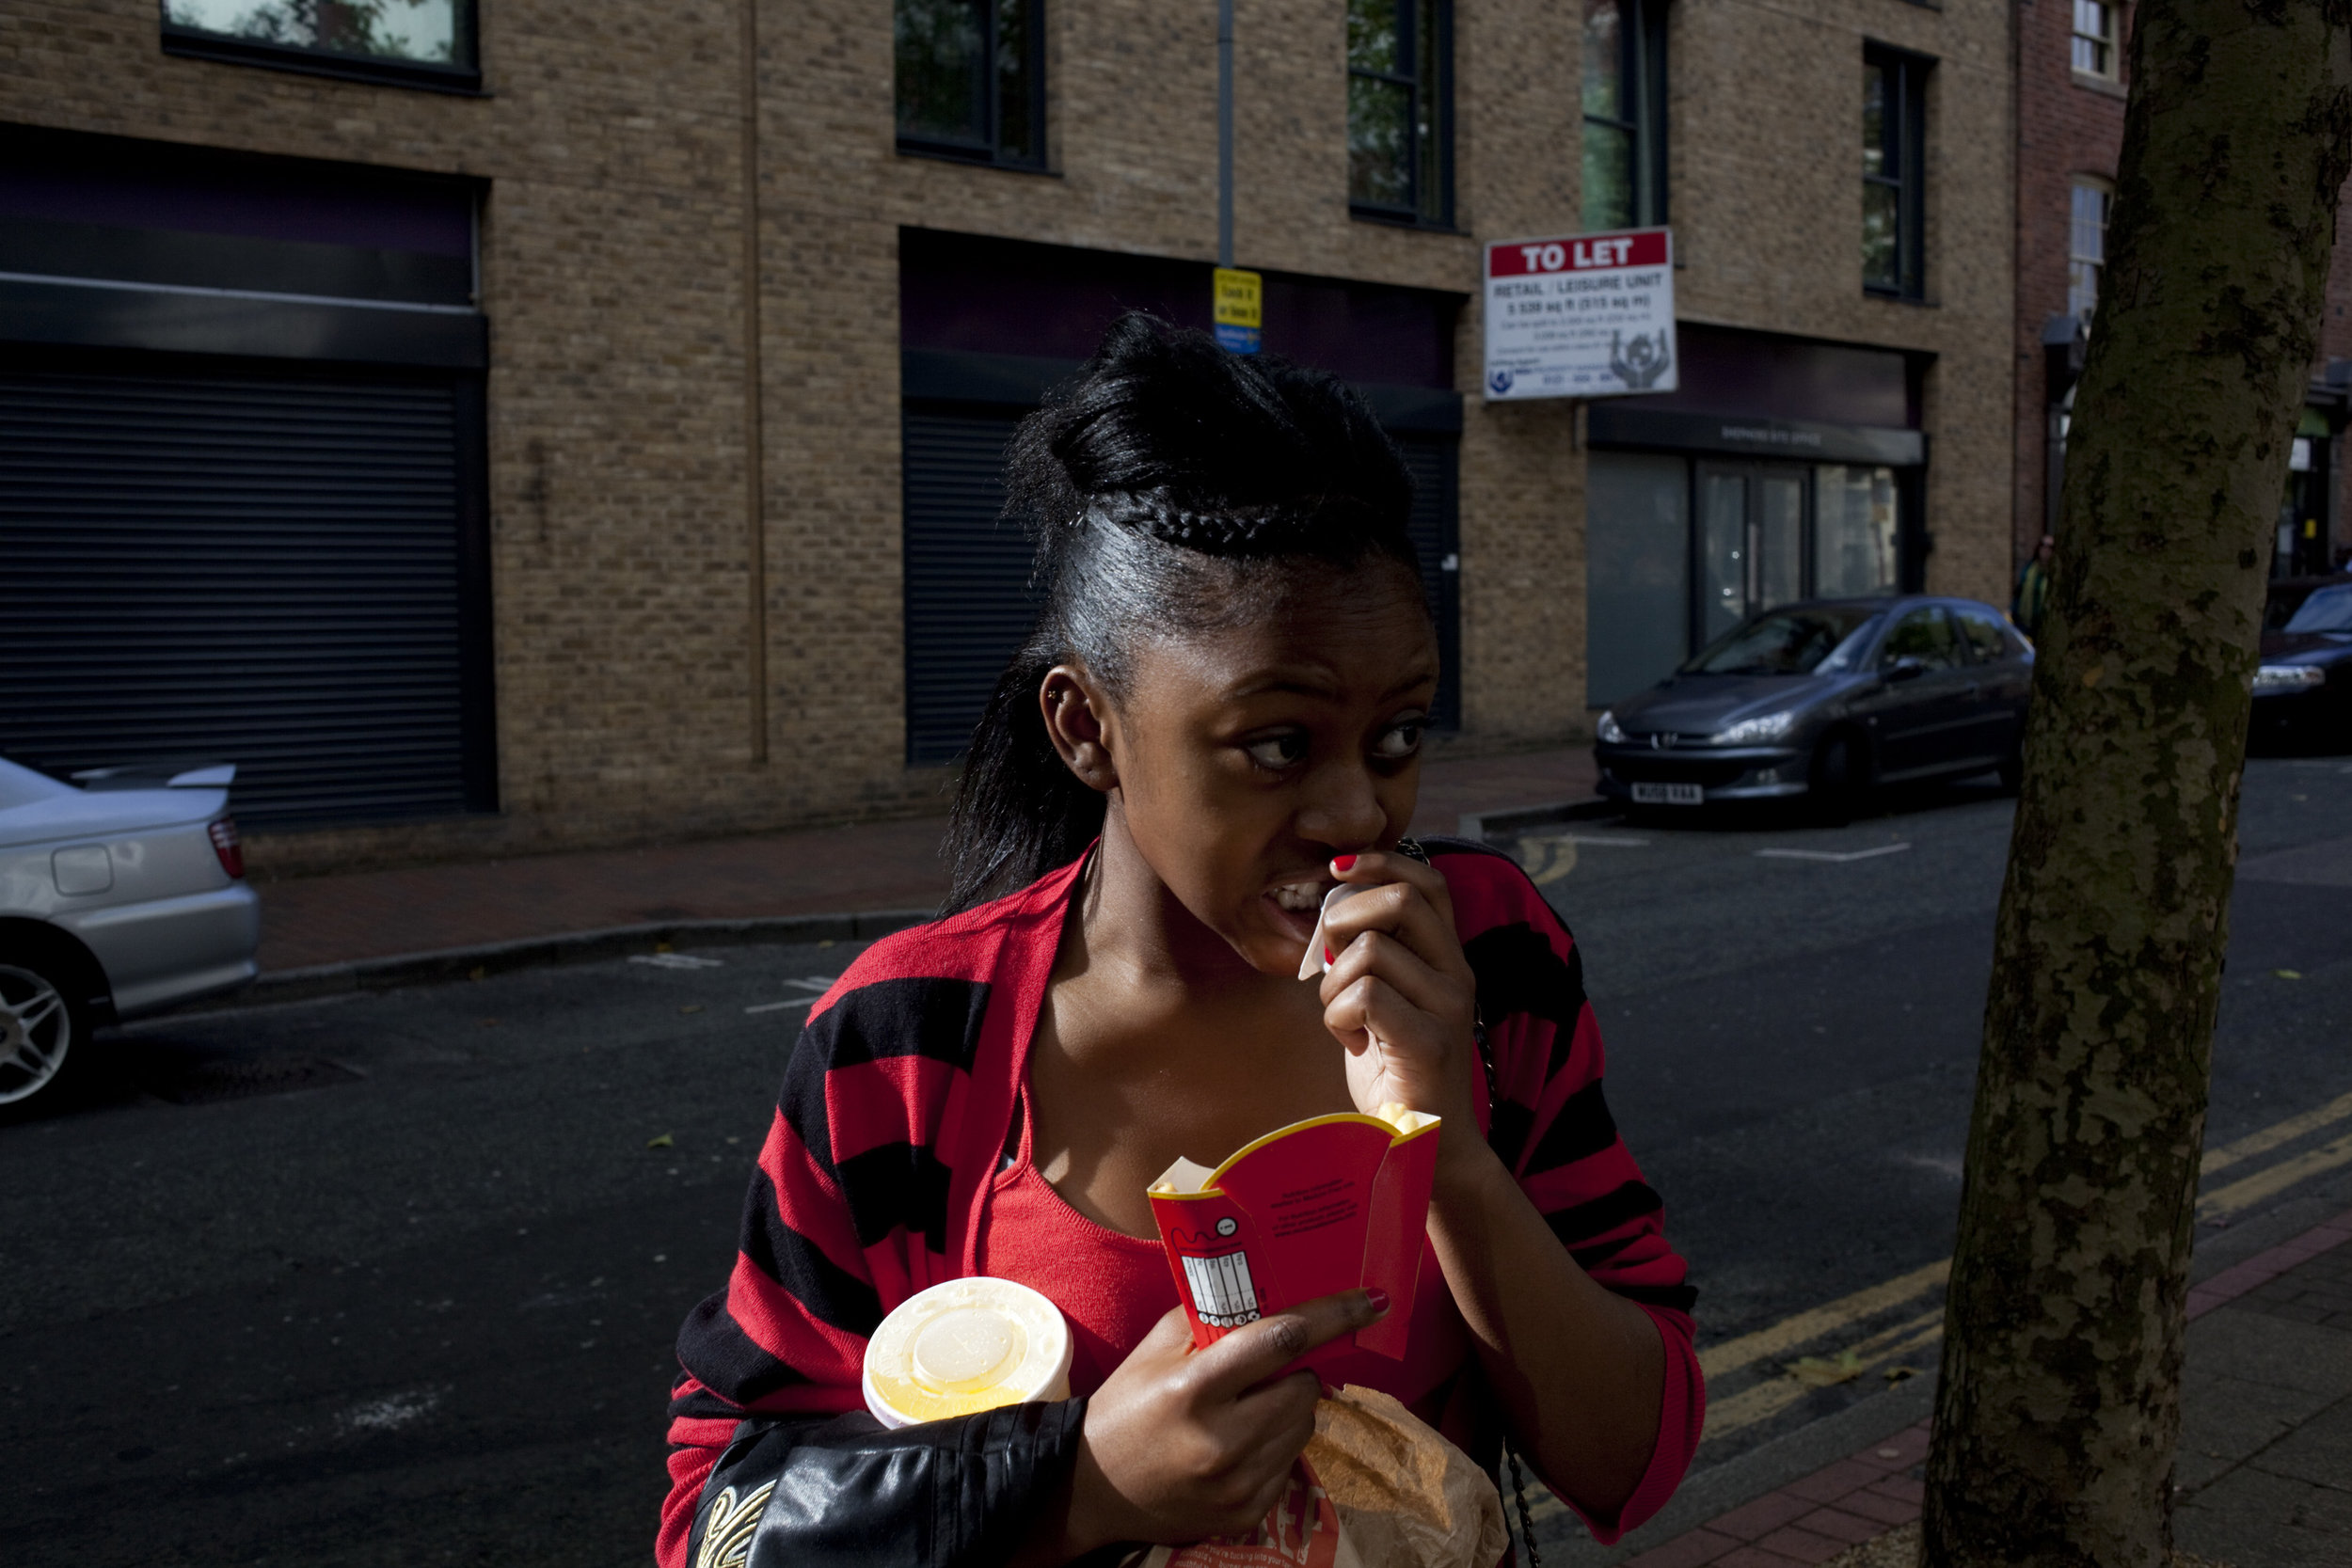 """Aailyah, """"It's cheap and my mates come here. I'd still come here if the food tasted bad as long as my mates came here."""""""